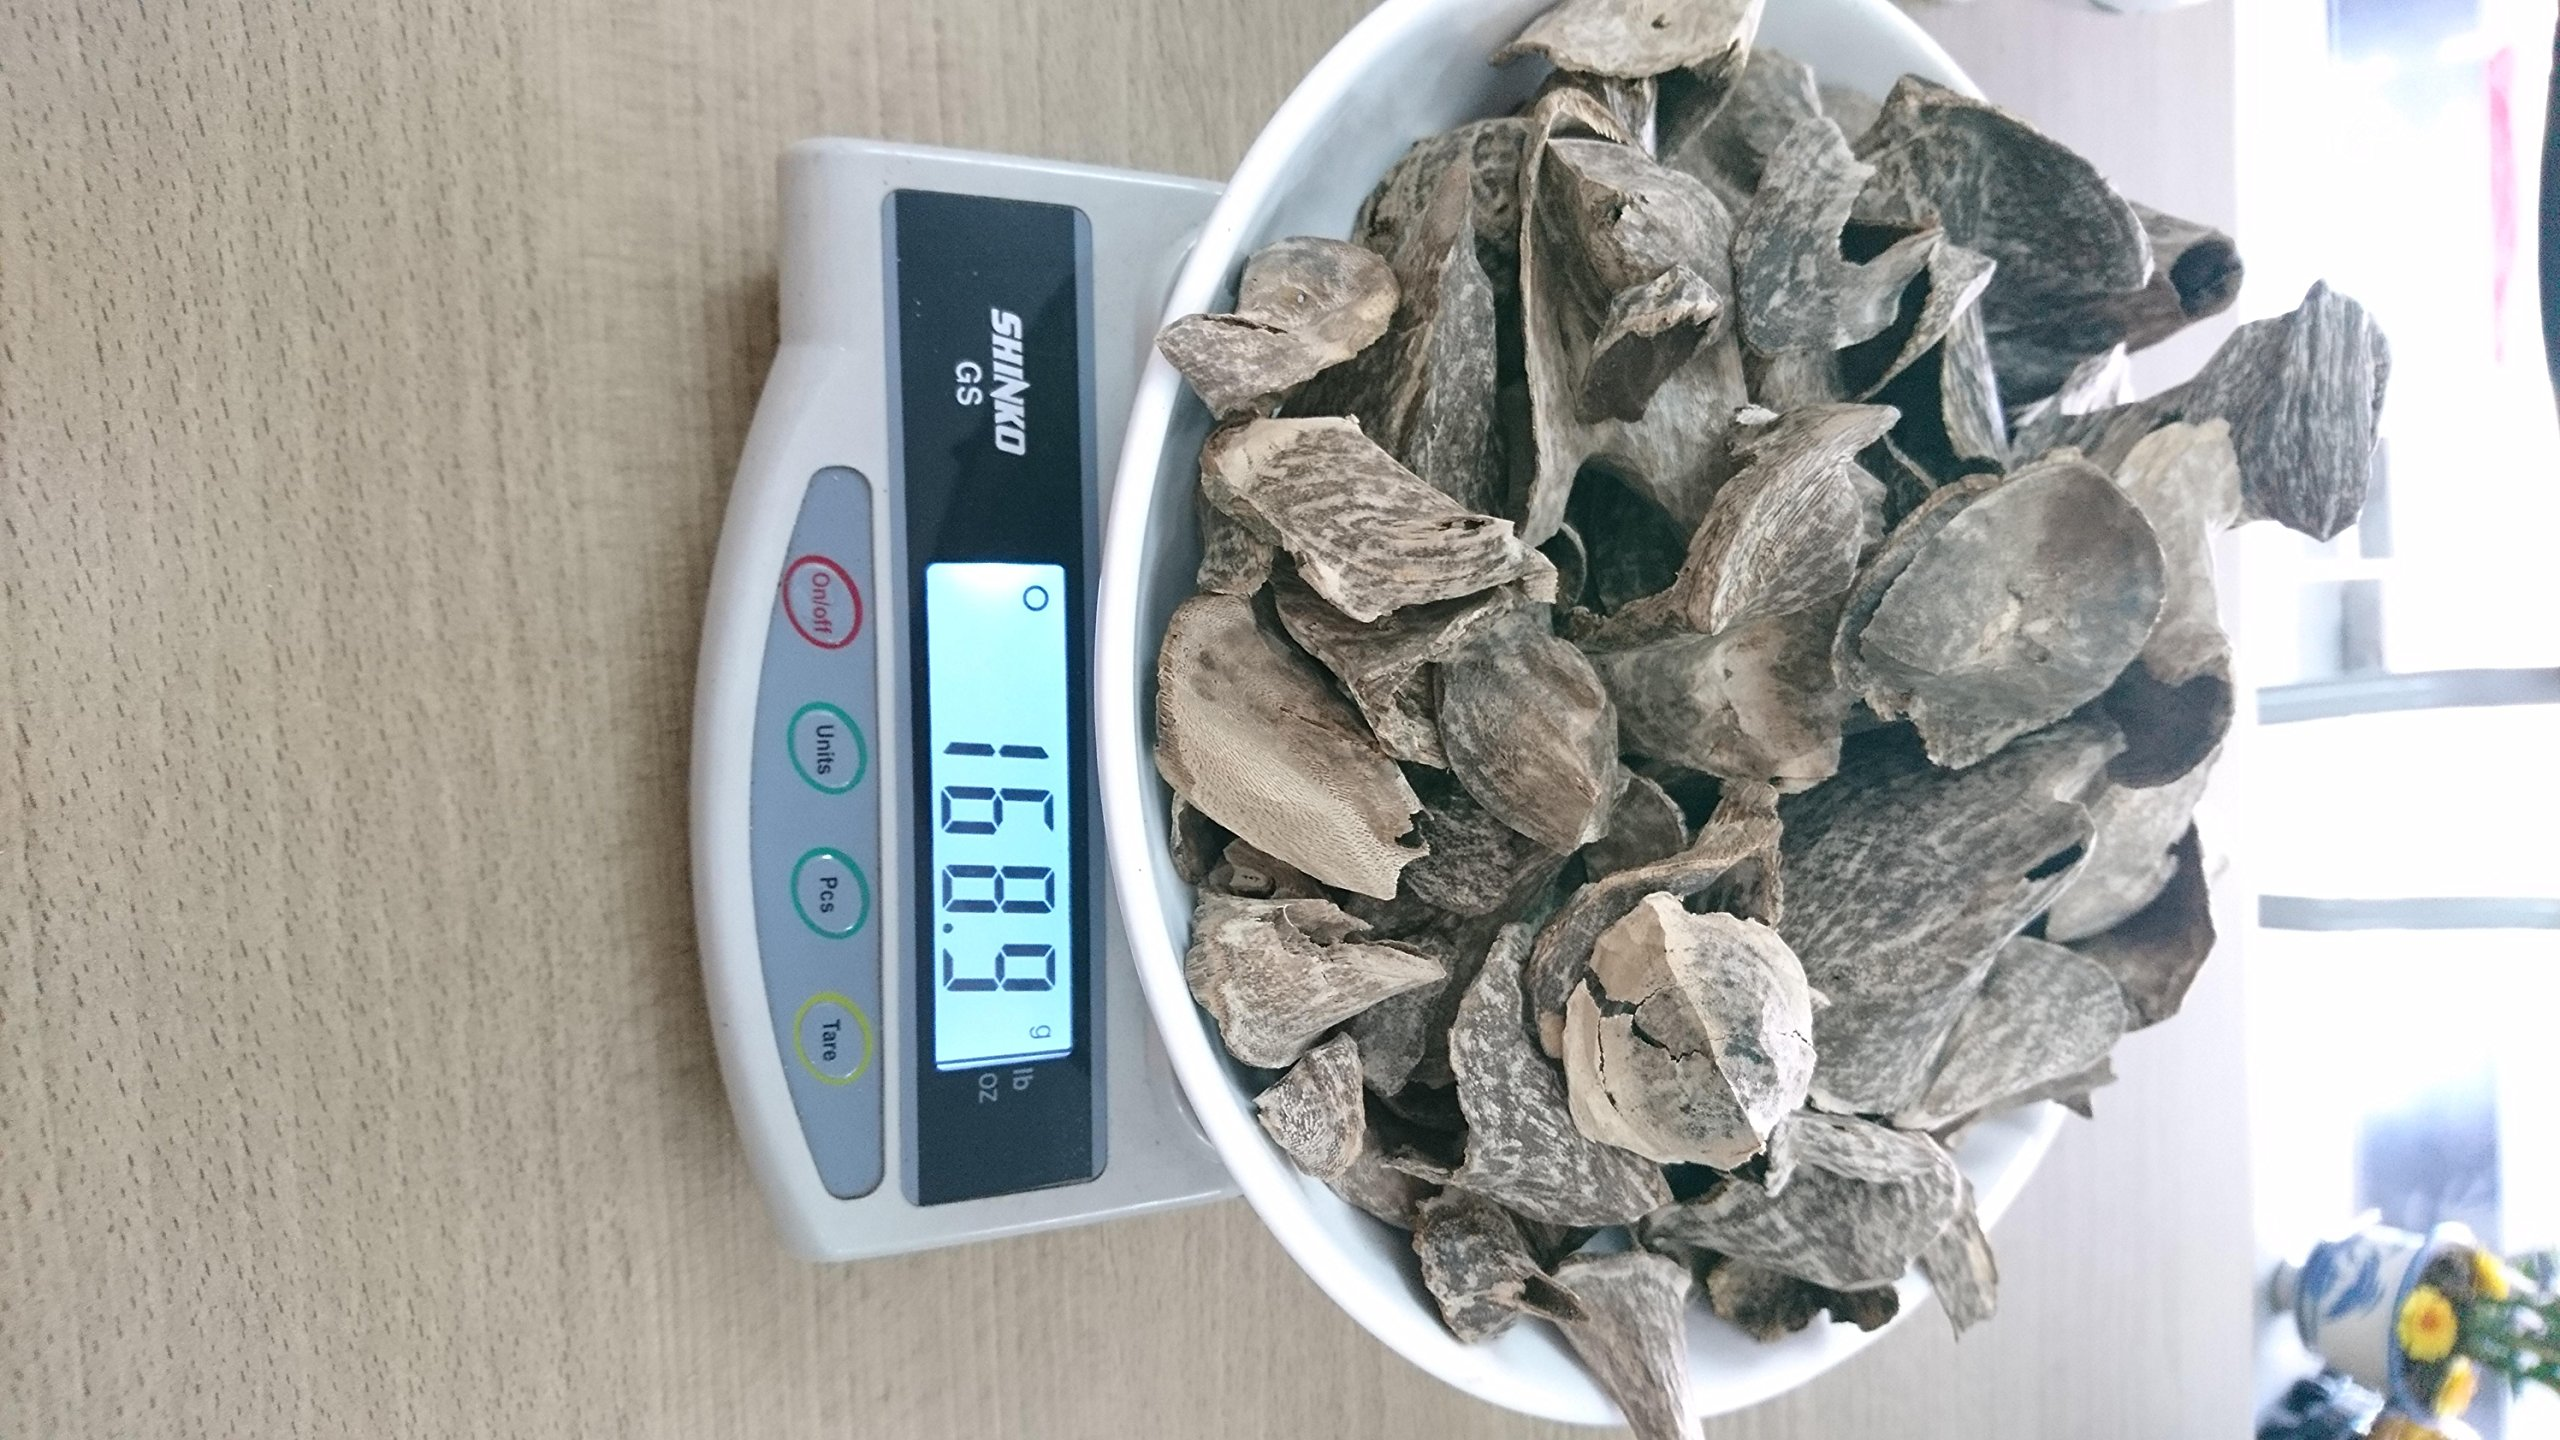 Wild agarwood chips - Cone Shape - Only having 168grams - Full of oil - Sweetest